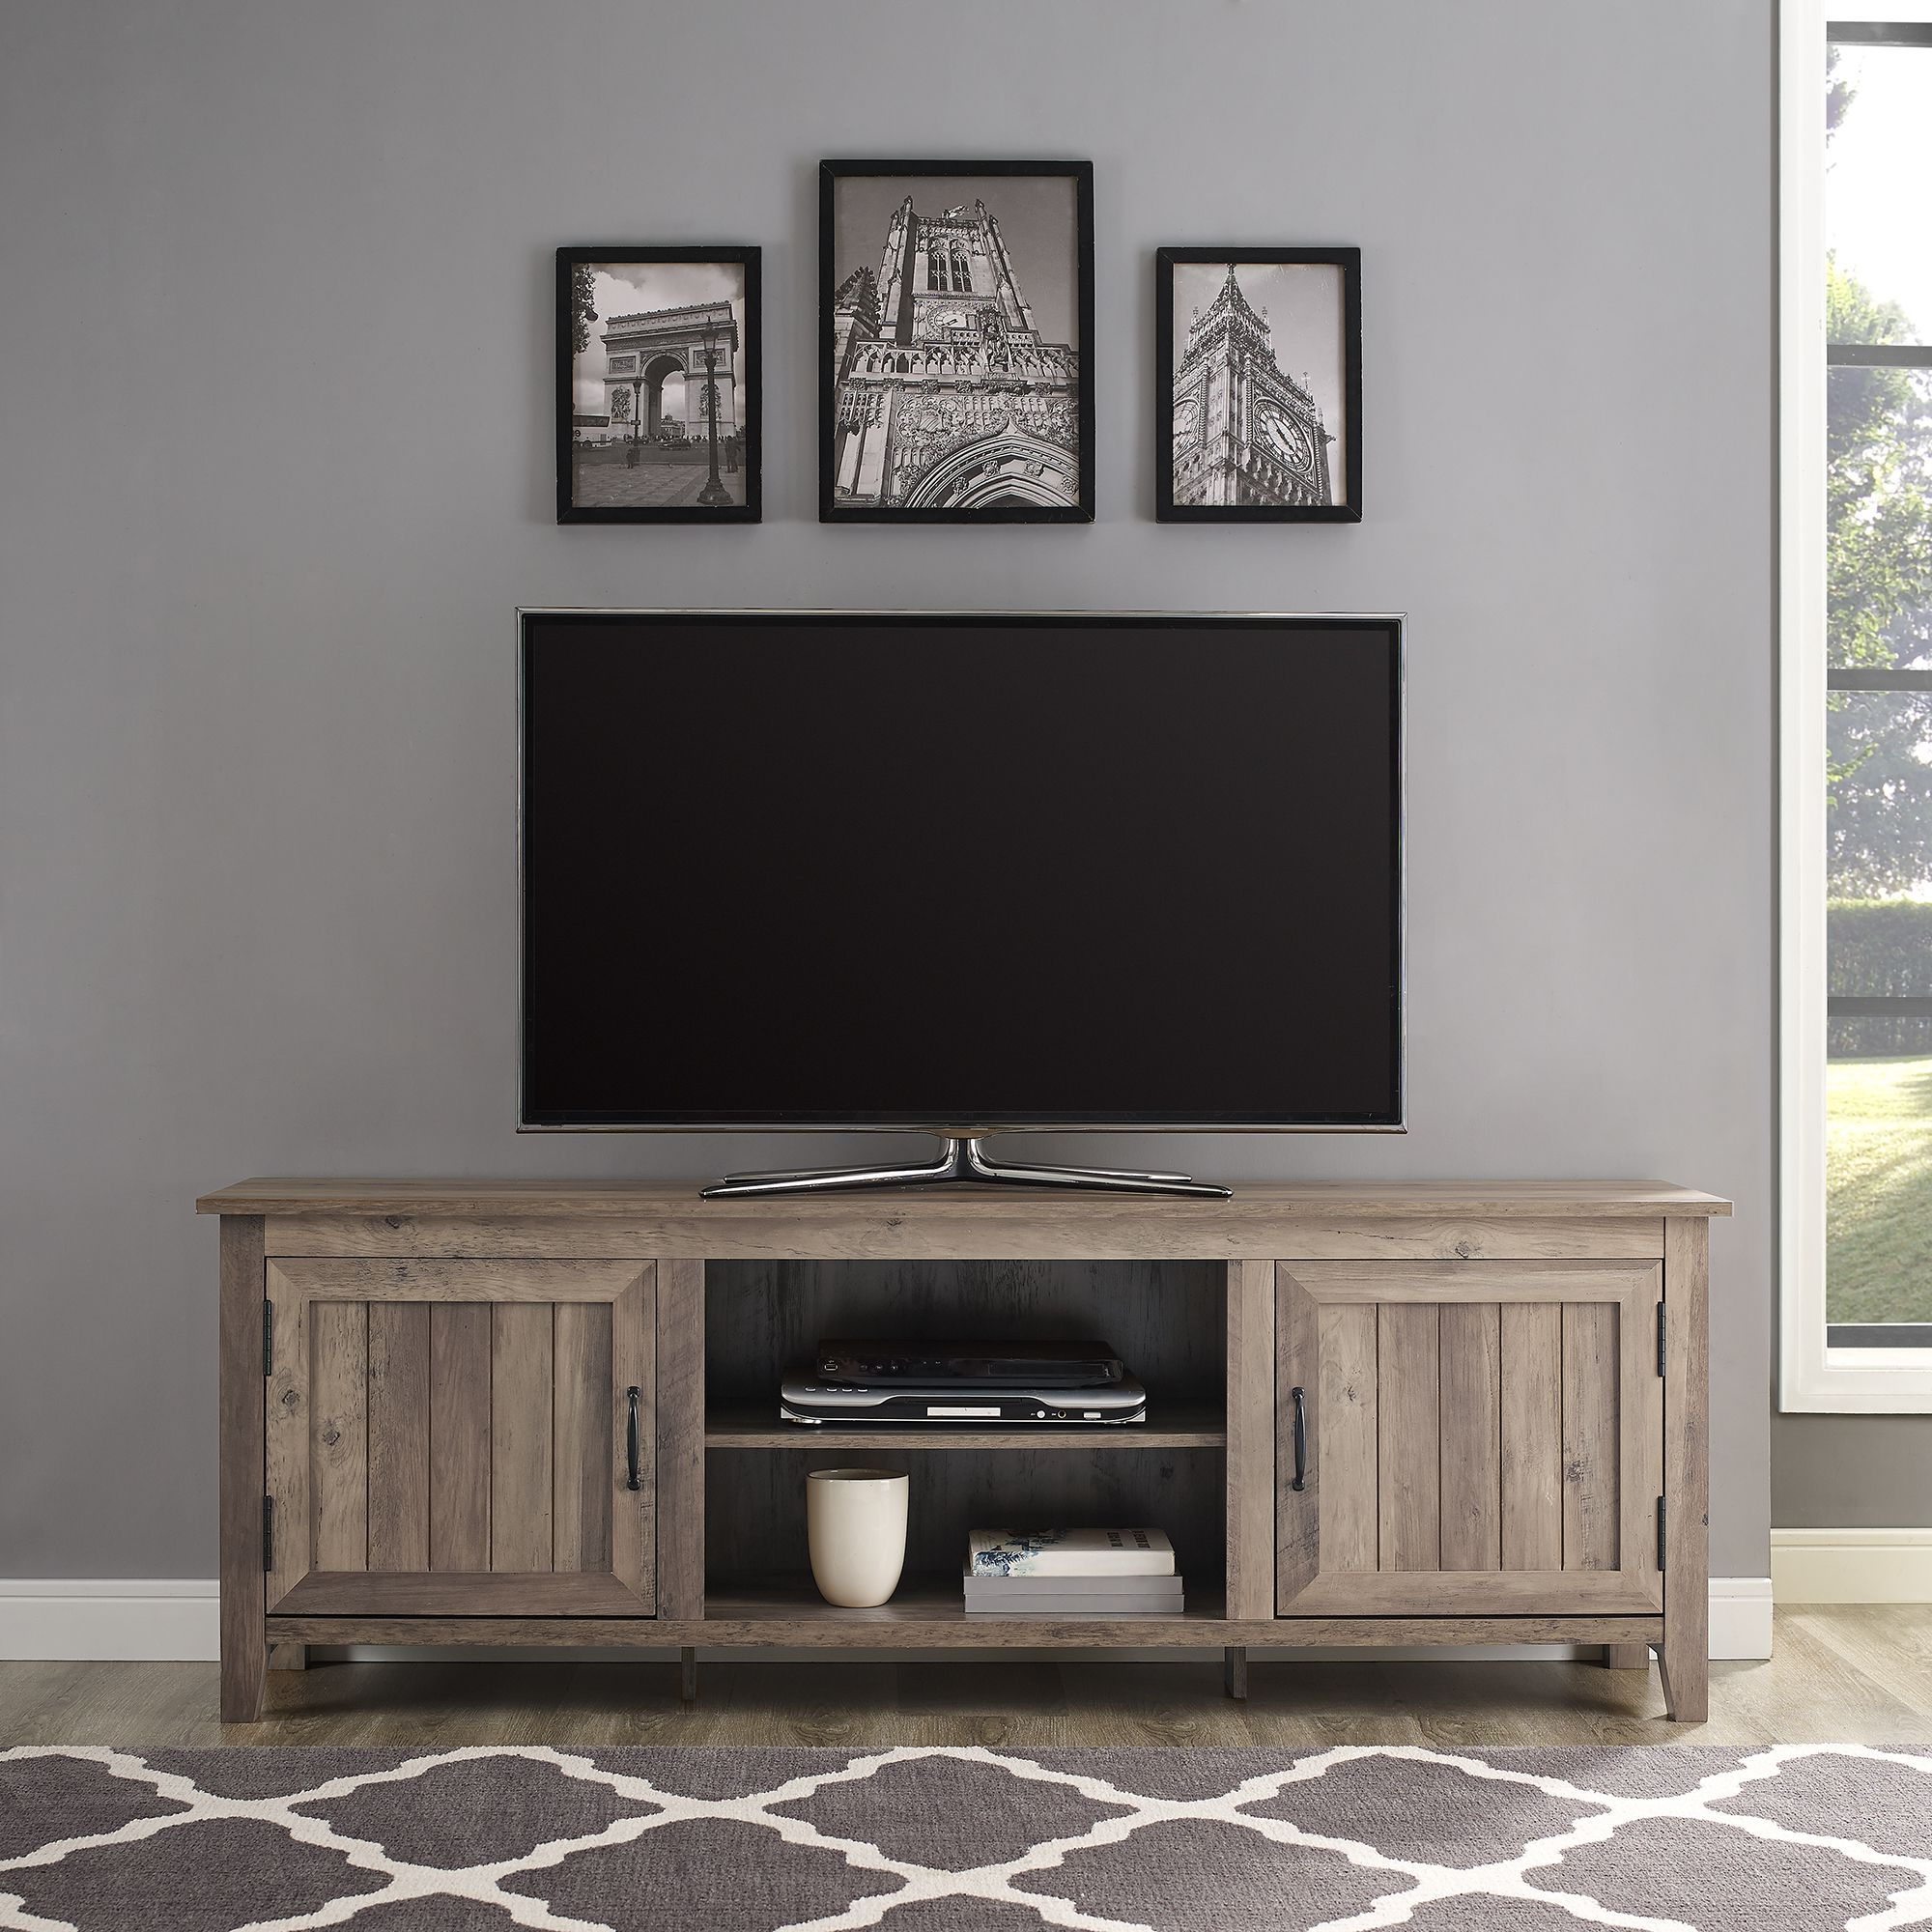 Woven Paths Farmhouse Grooved Door Tv Stand For Tvs Up To Regarding Woven Paths Barn Door Tv Stands In Multiple Finishes (View 4 of 20)